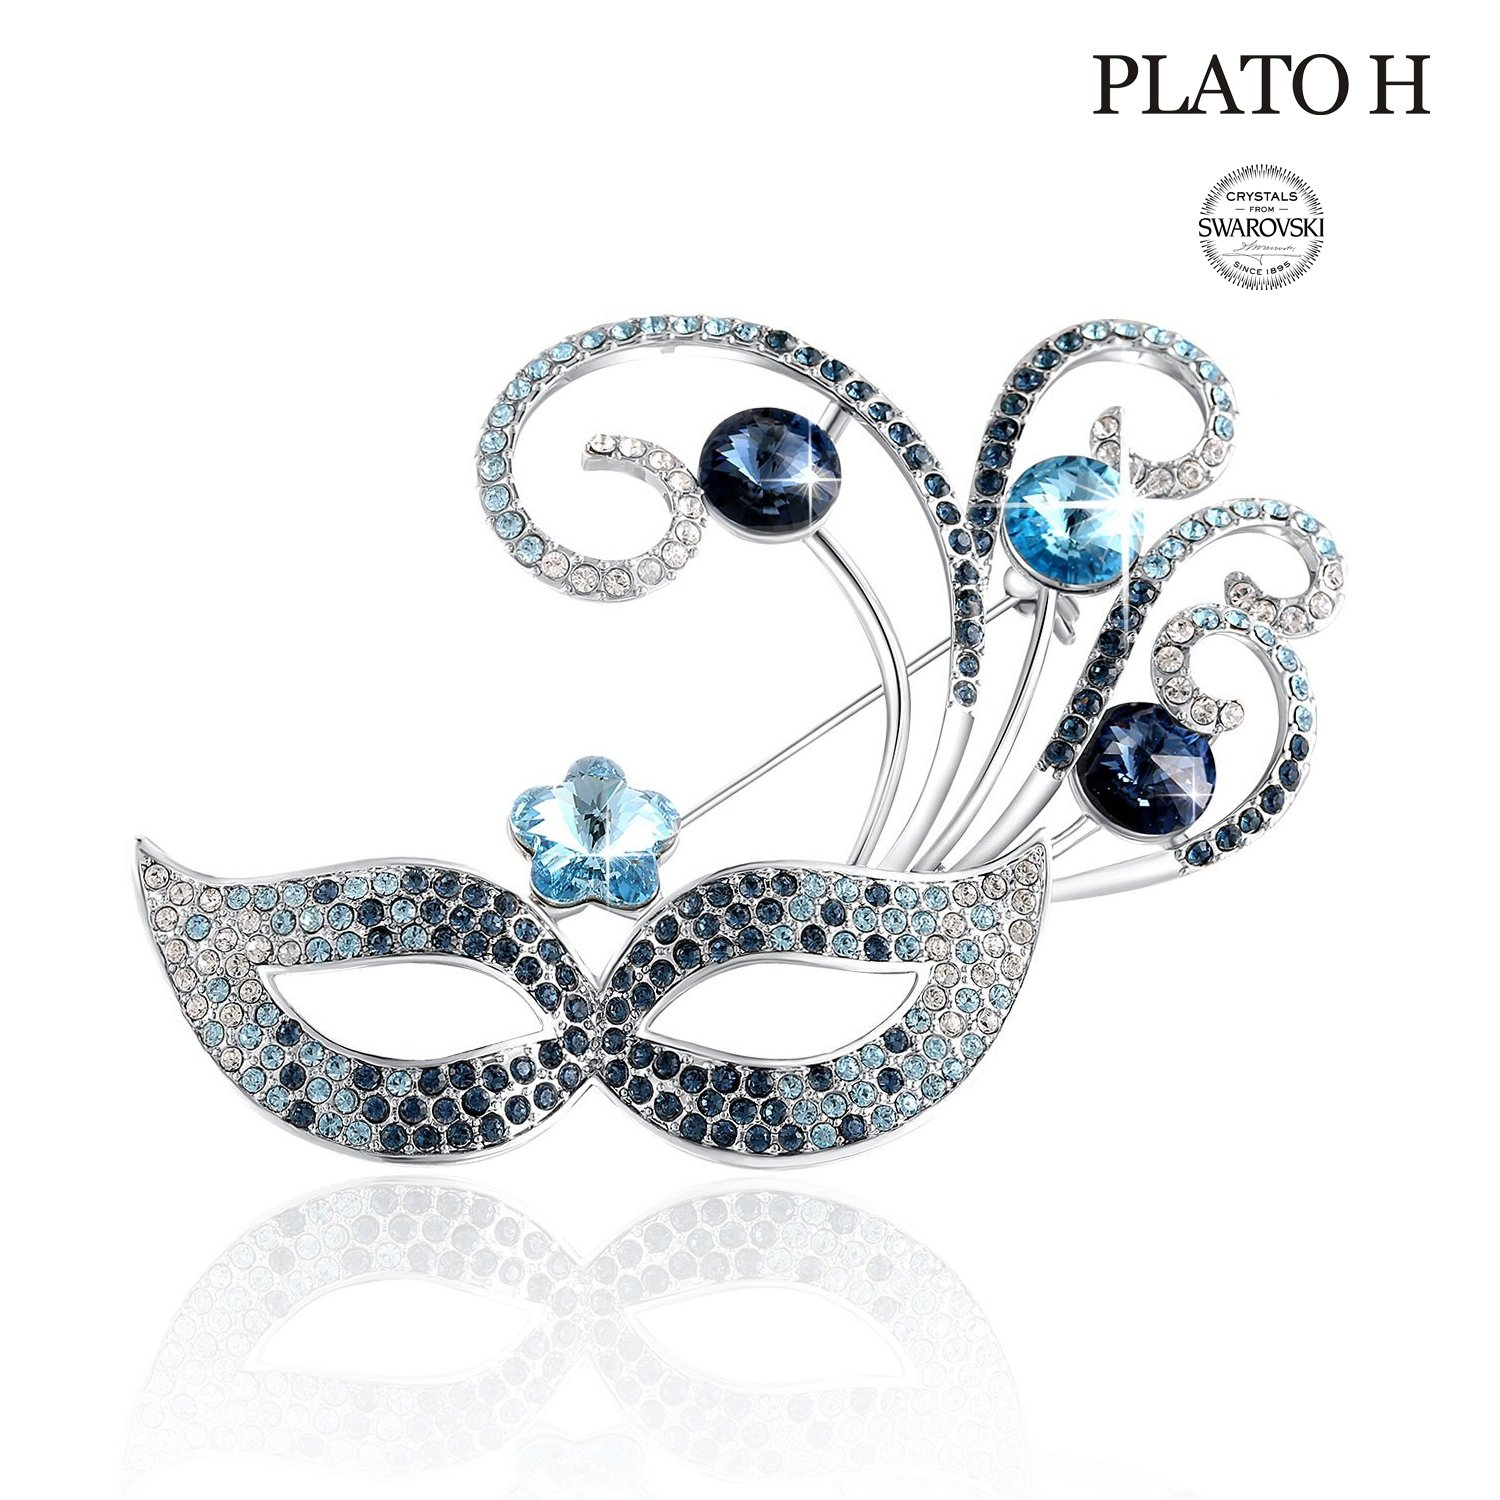 PLATO H Woman Mask Pins Brooches Venice Bauta Brooch with Swarovski Crystals Mom Ideal Gift, Fashion Jewelry, for Her